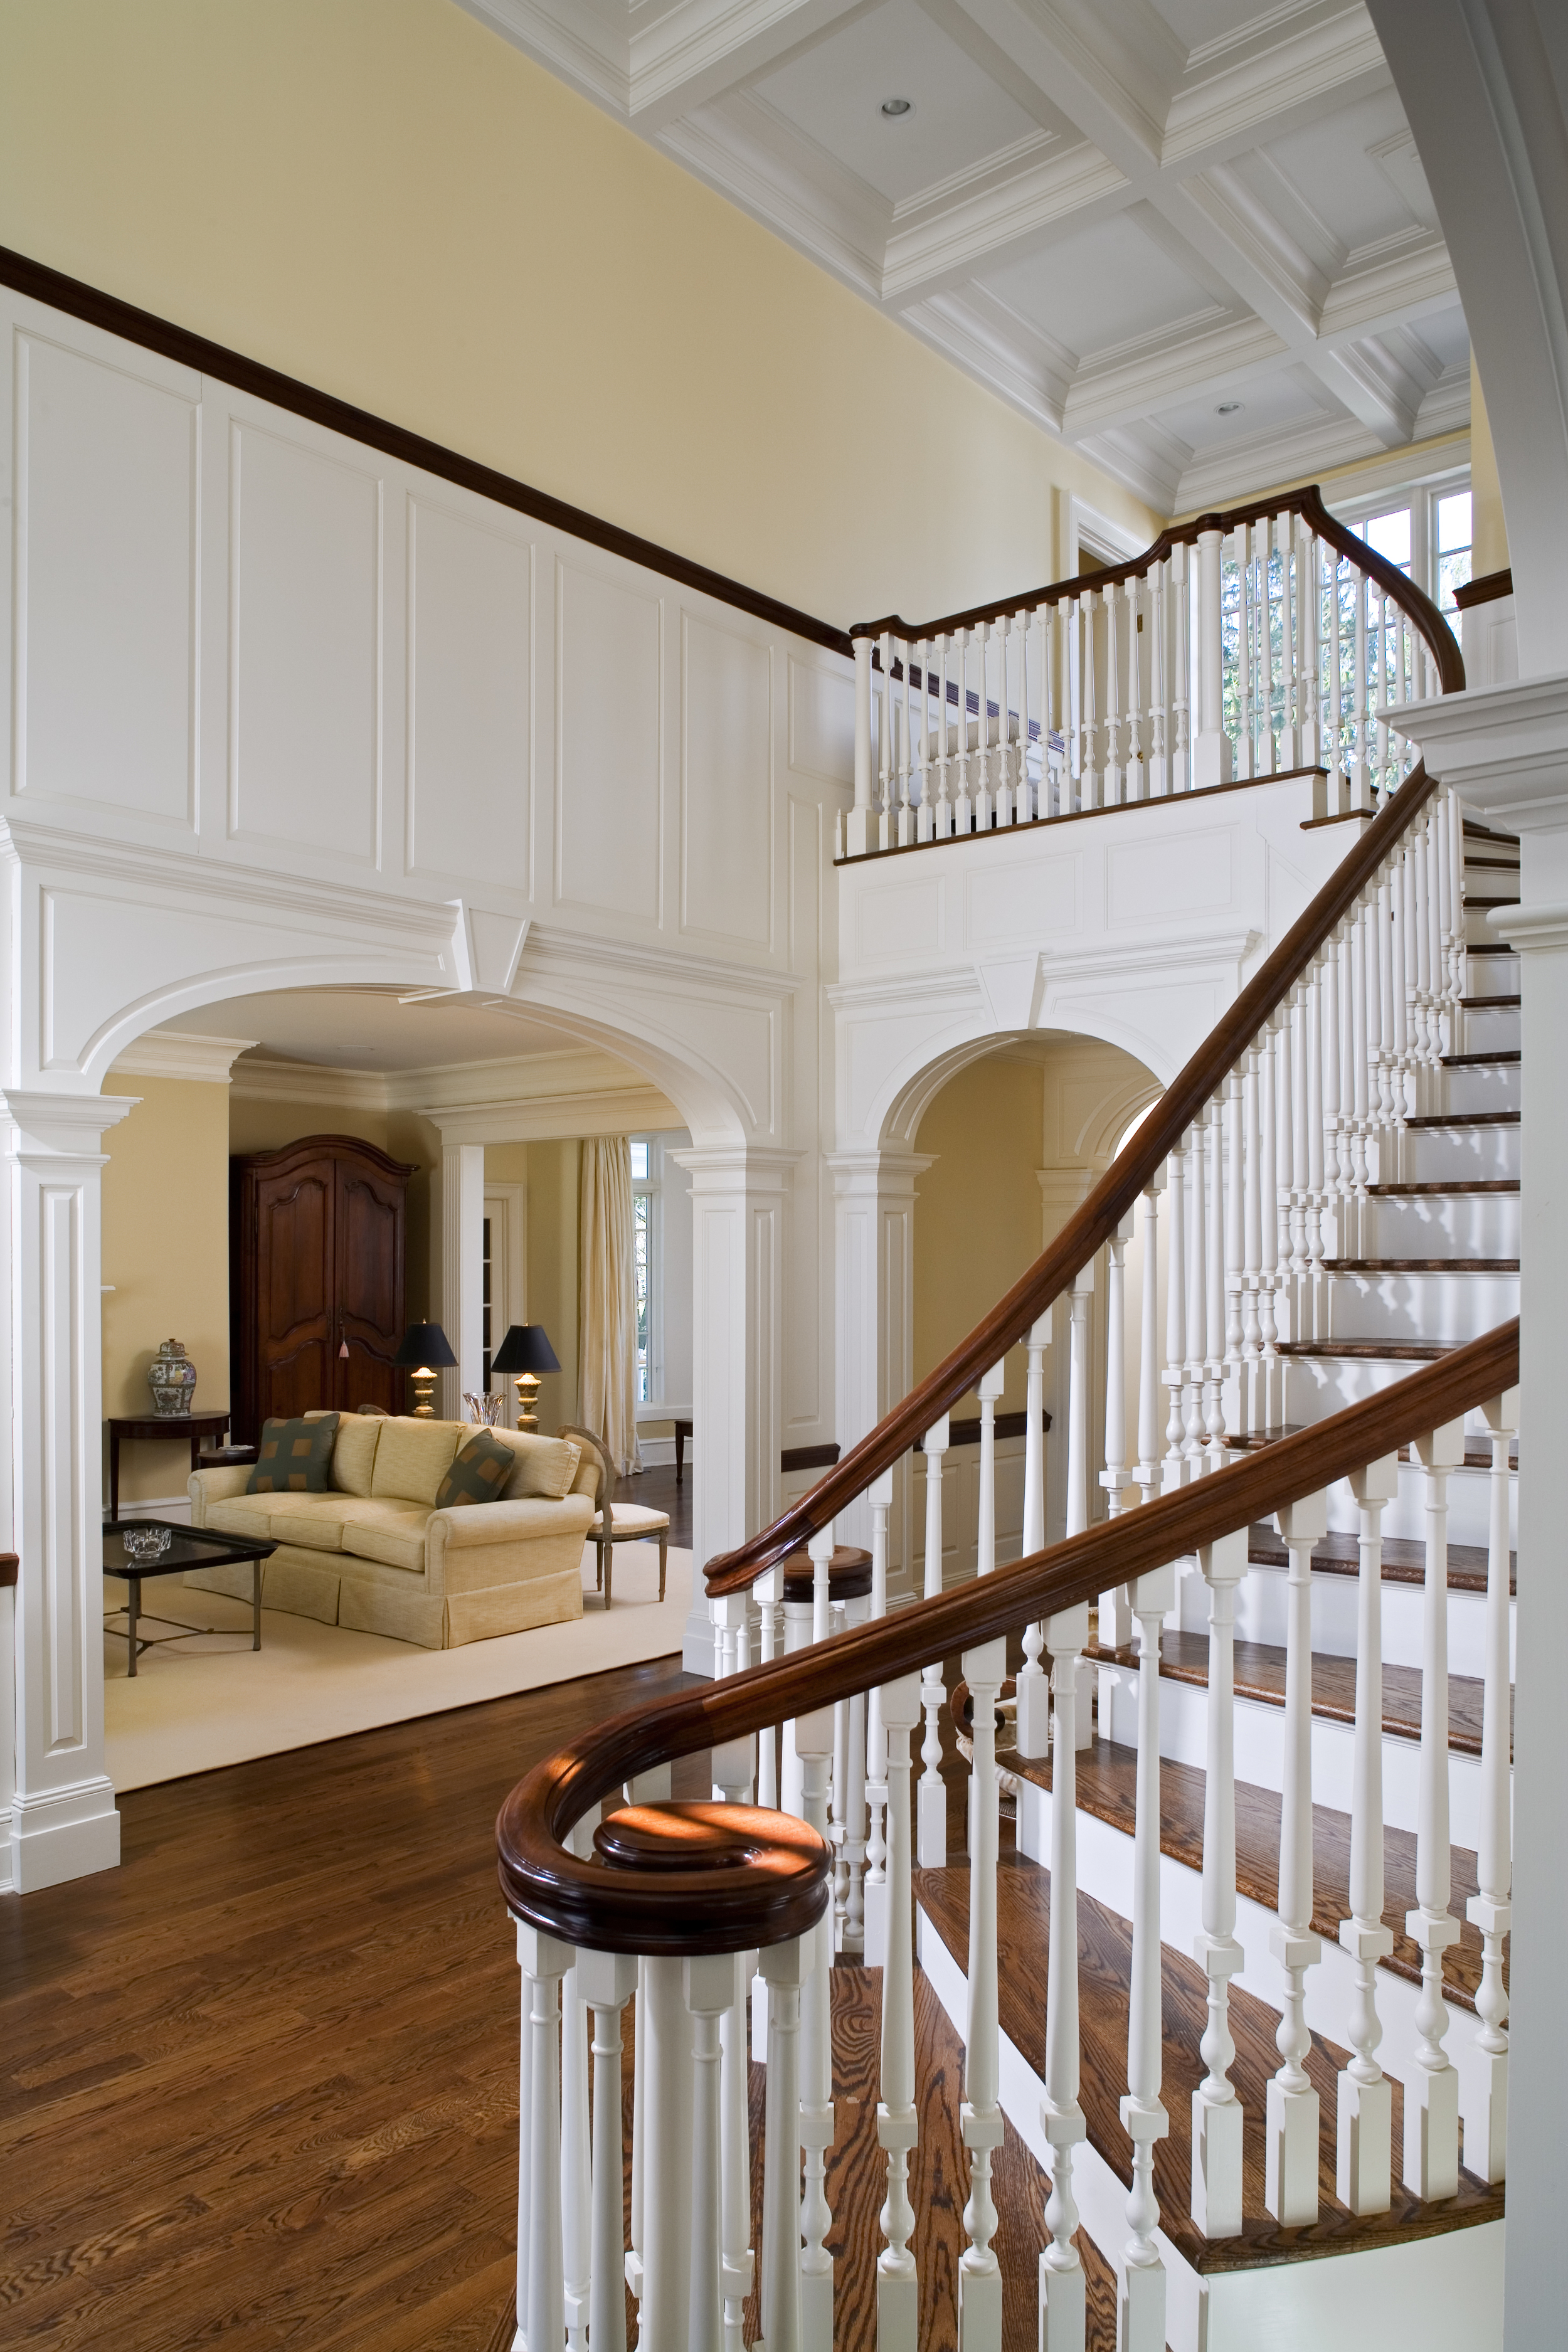 Entry Foyer of the Midcountry Greenwich Colonial